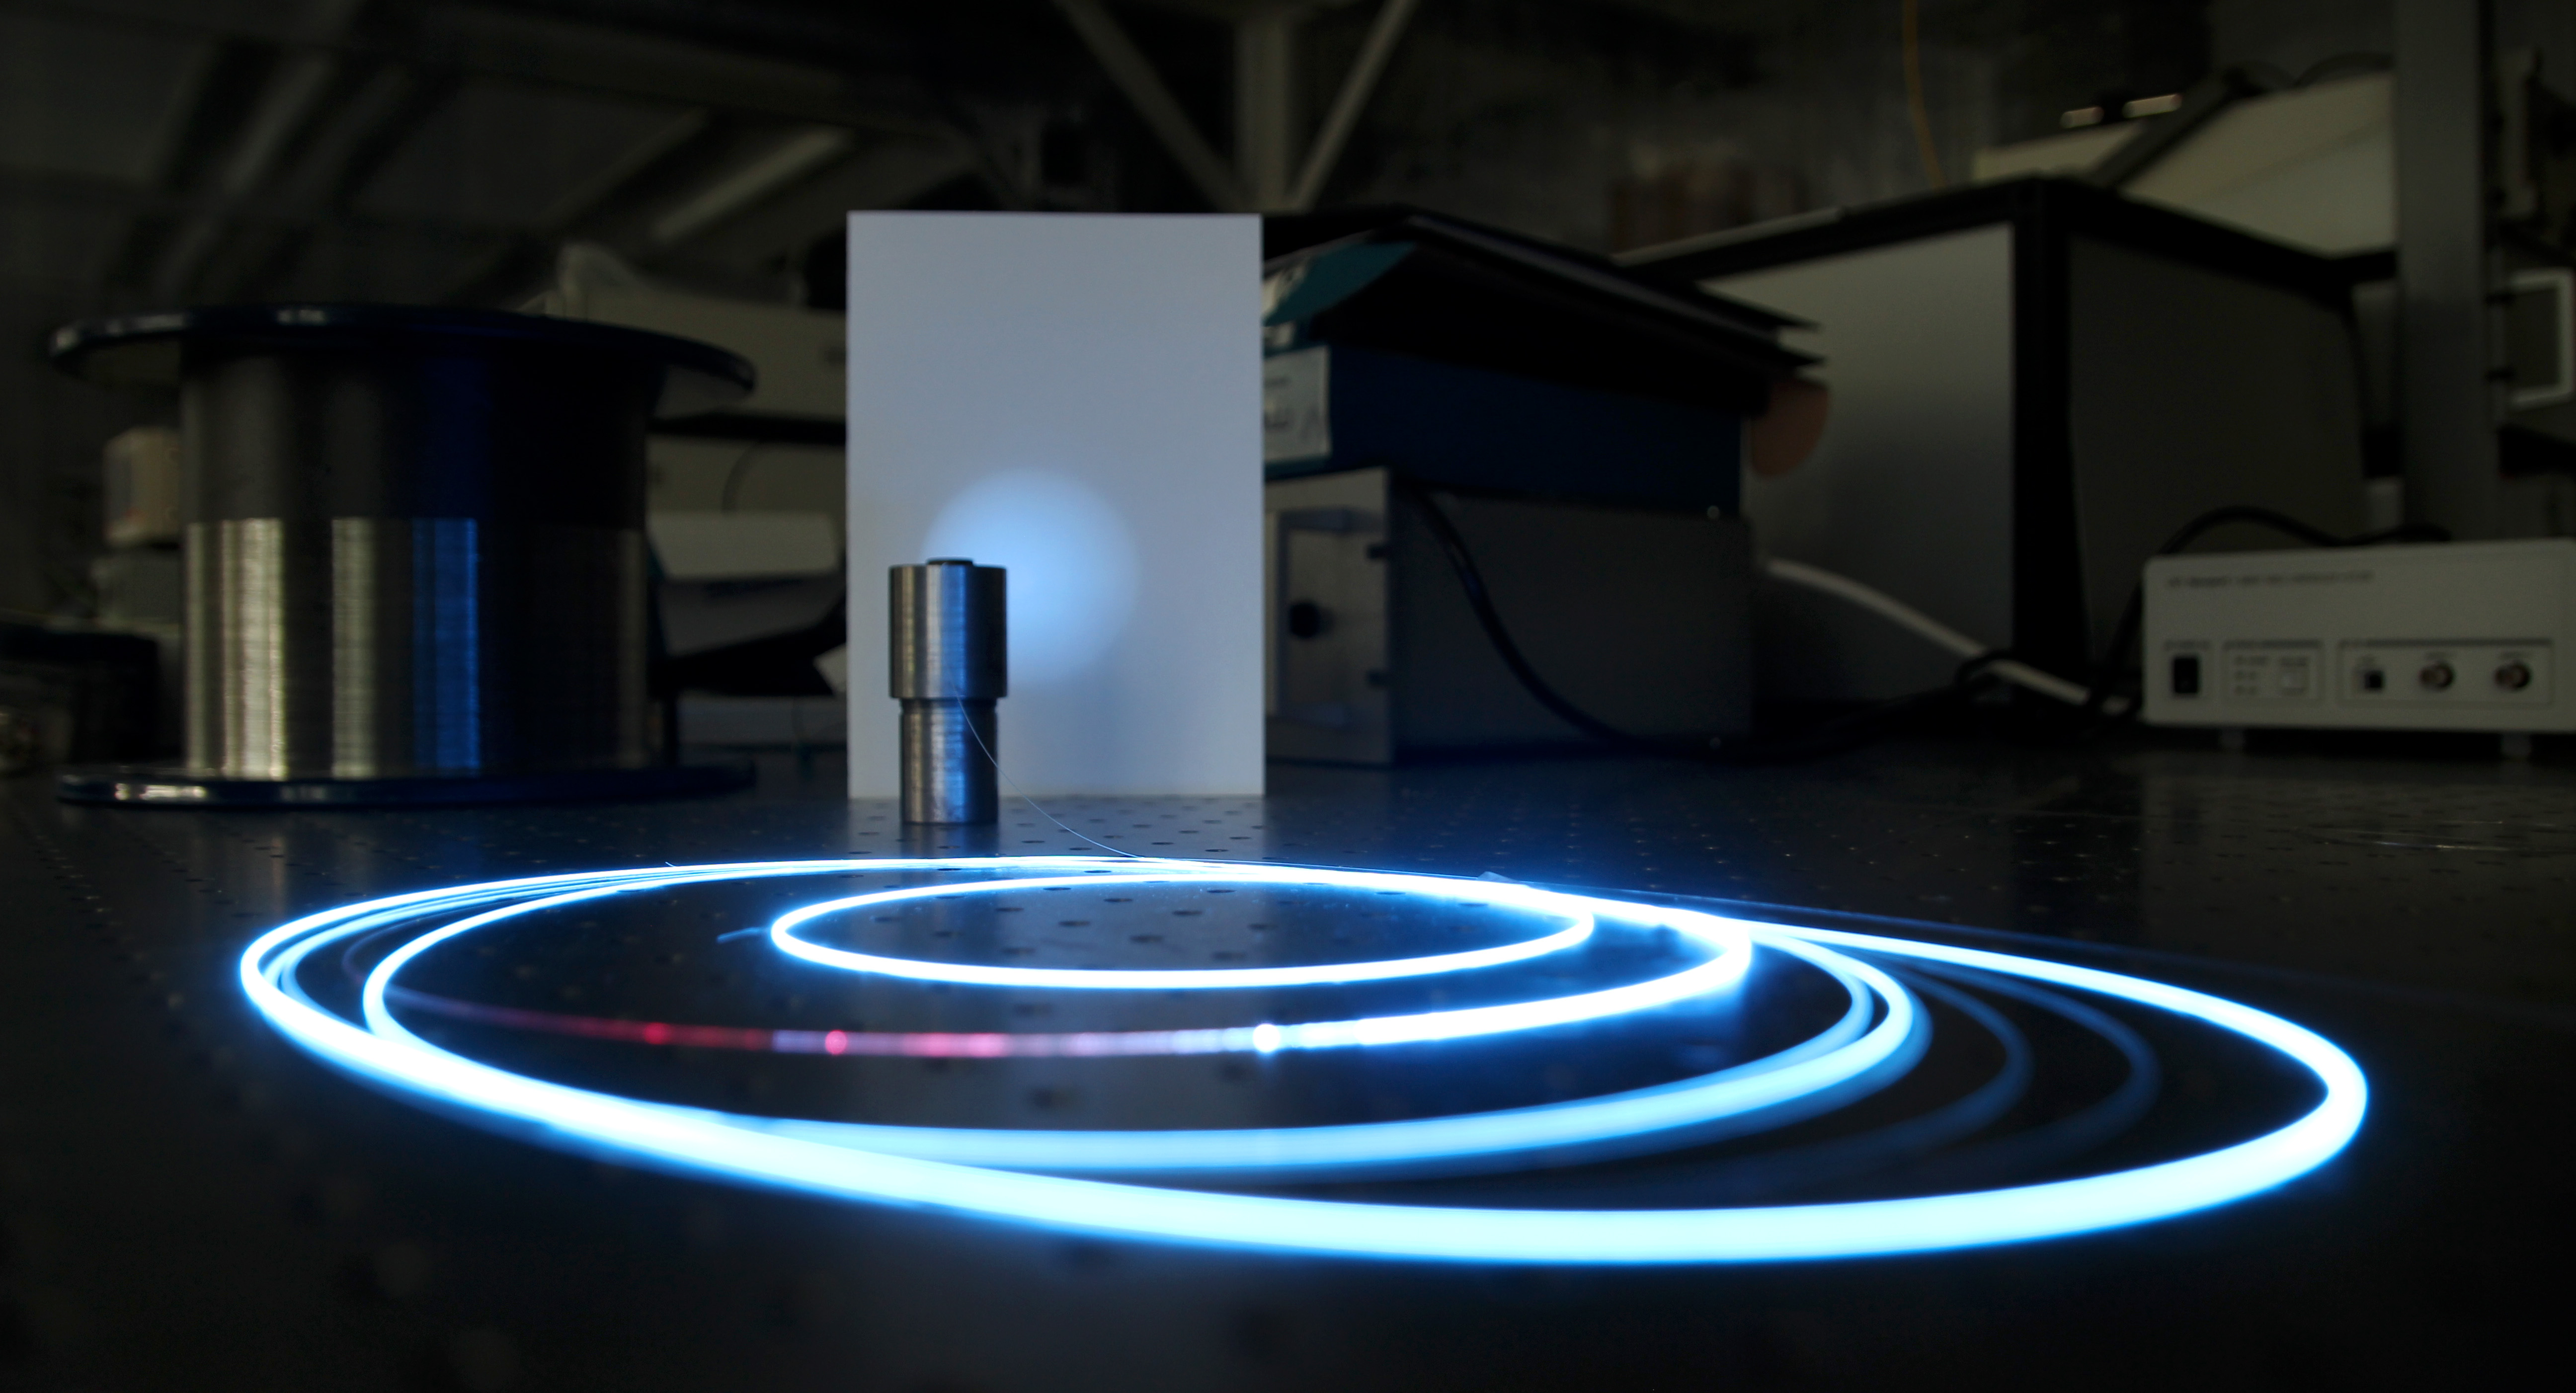 Shines with a blue color in the dark laser physics lab ntnu nt